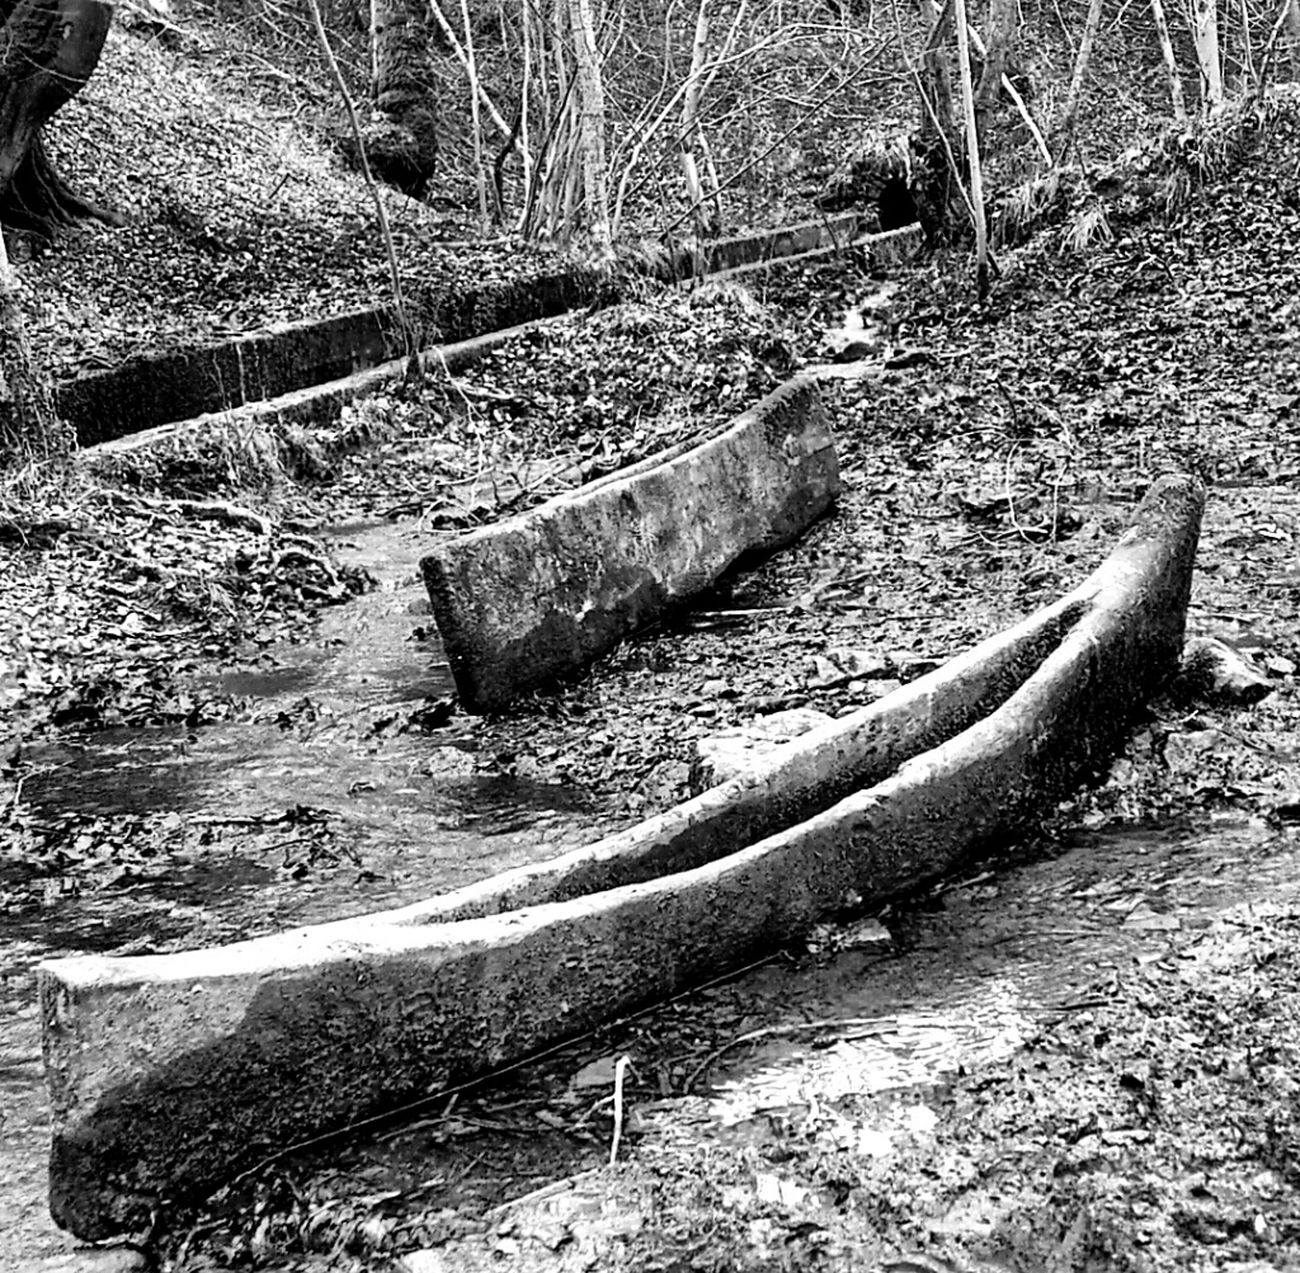 Blackandwhite Sculpture Trail